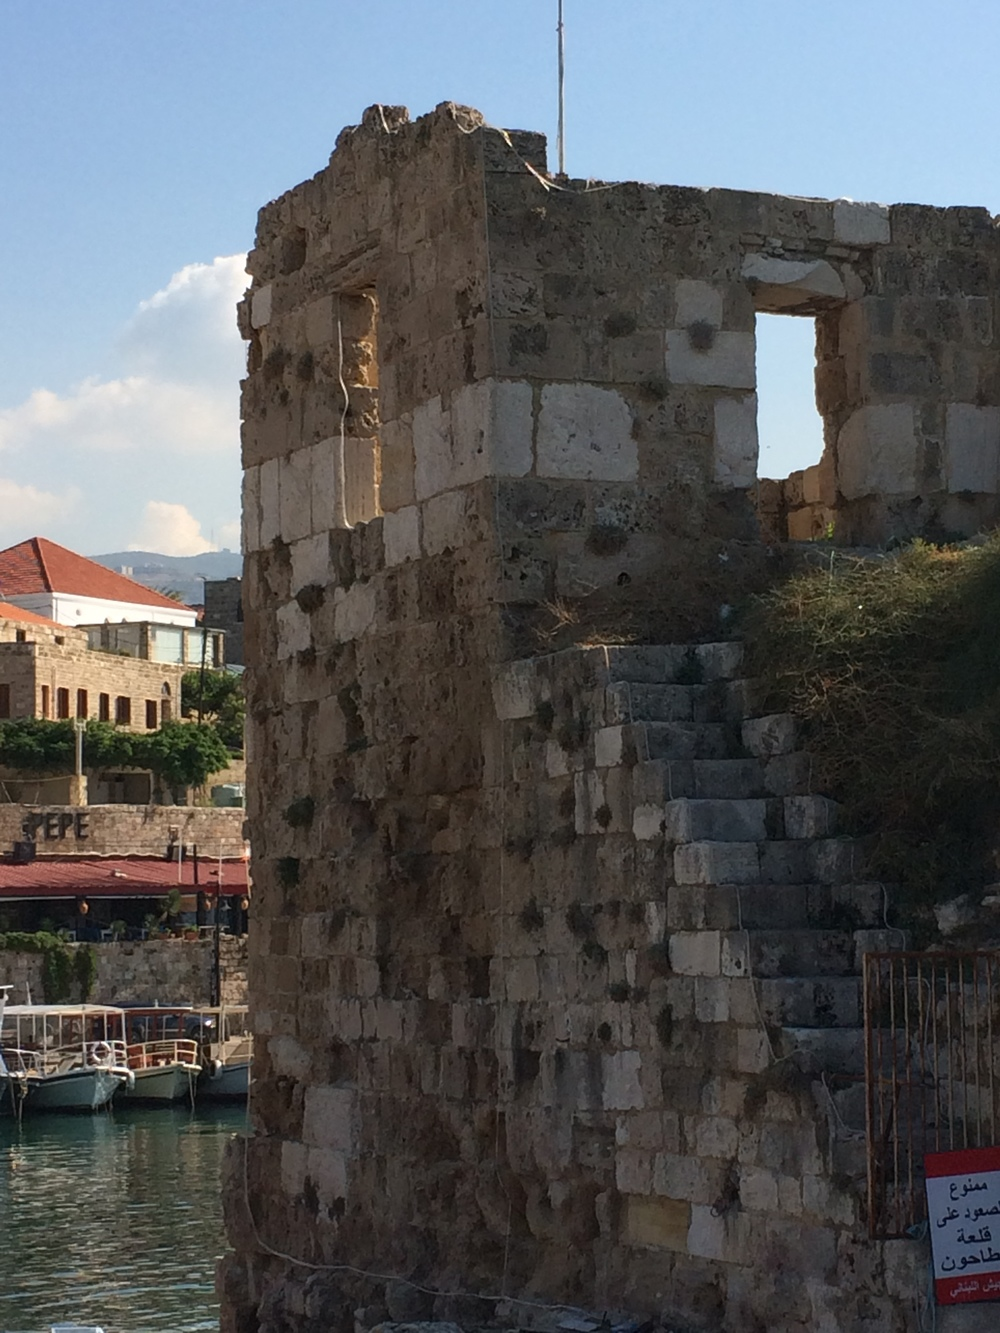 Roman ruins at the port in Byblos